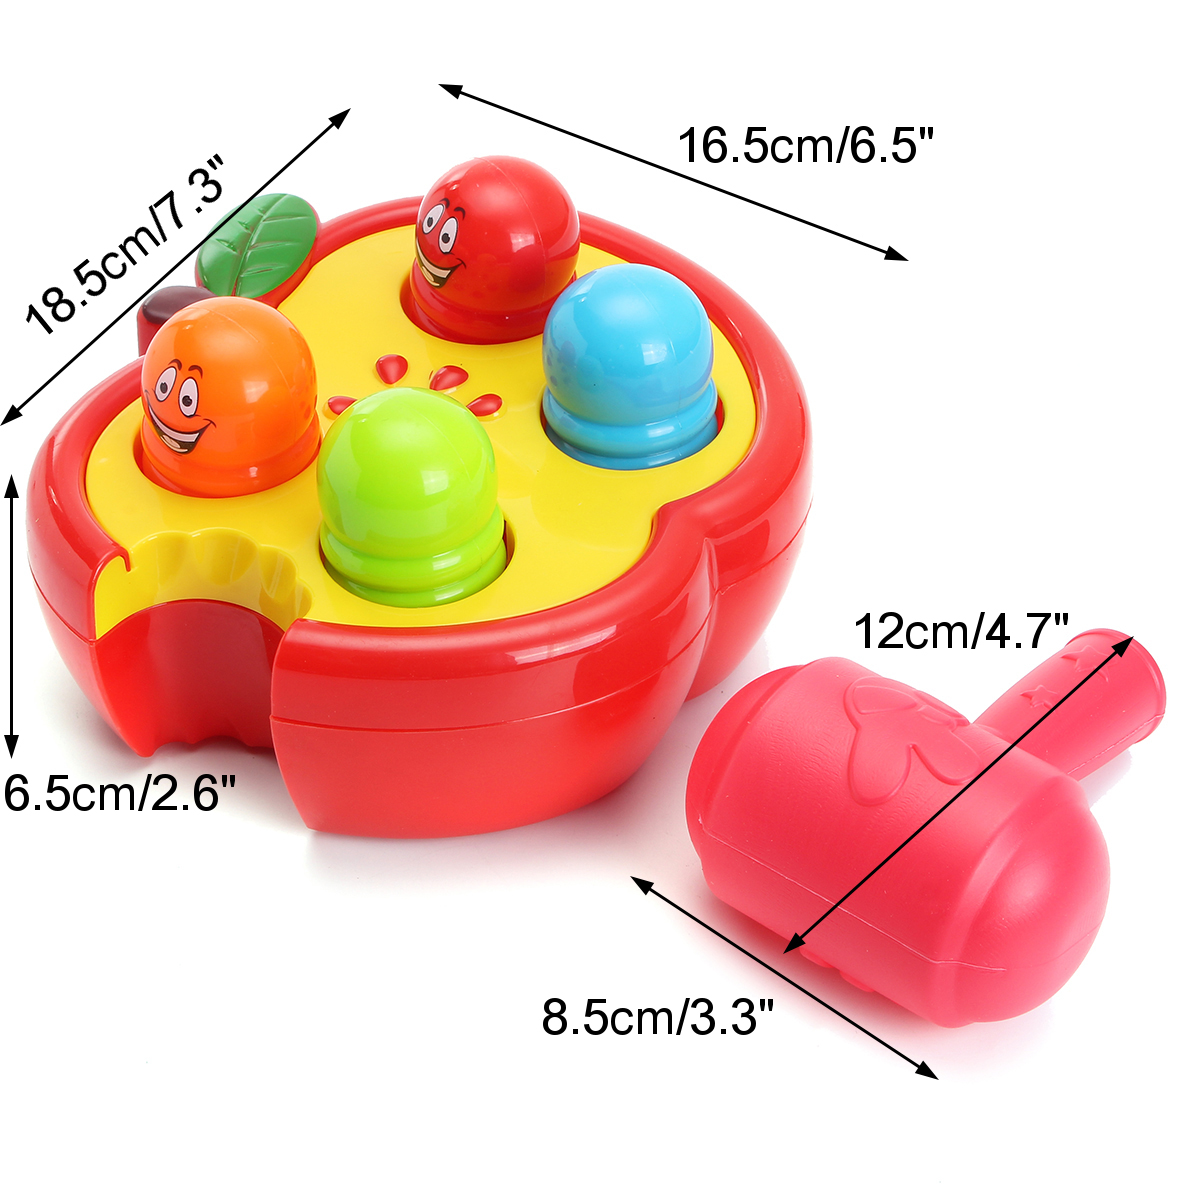 Electronic Percussion Toys Fruitworm Whac-A-Mole Game Sound Preschool Toddler Board Game Toy